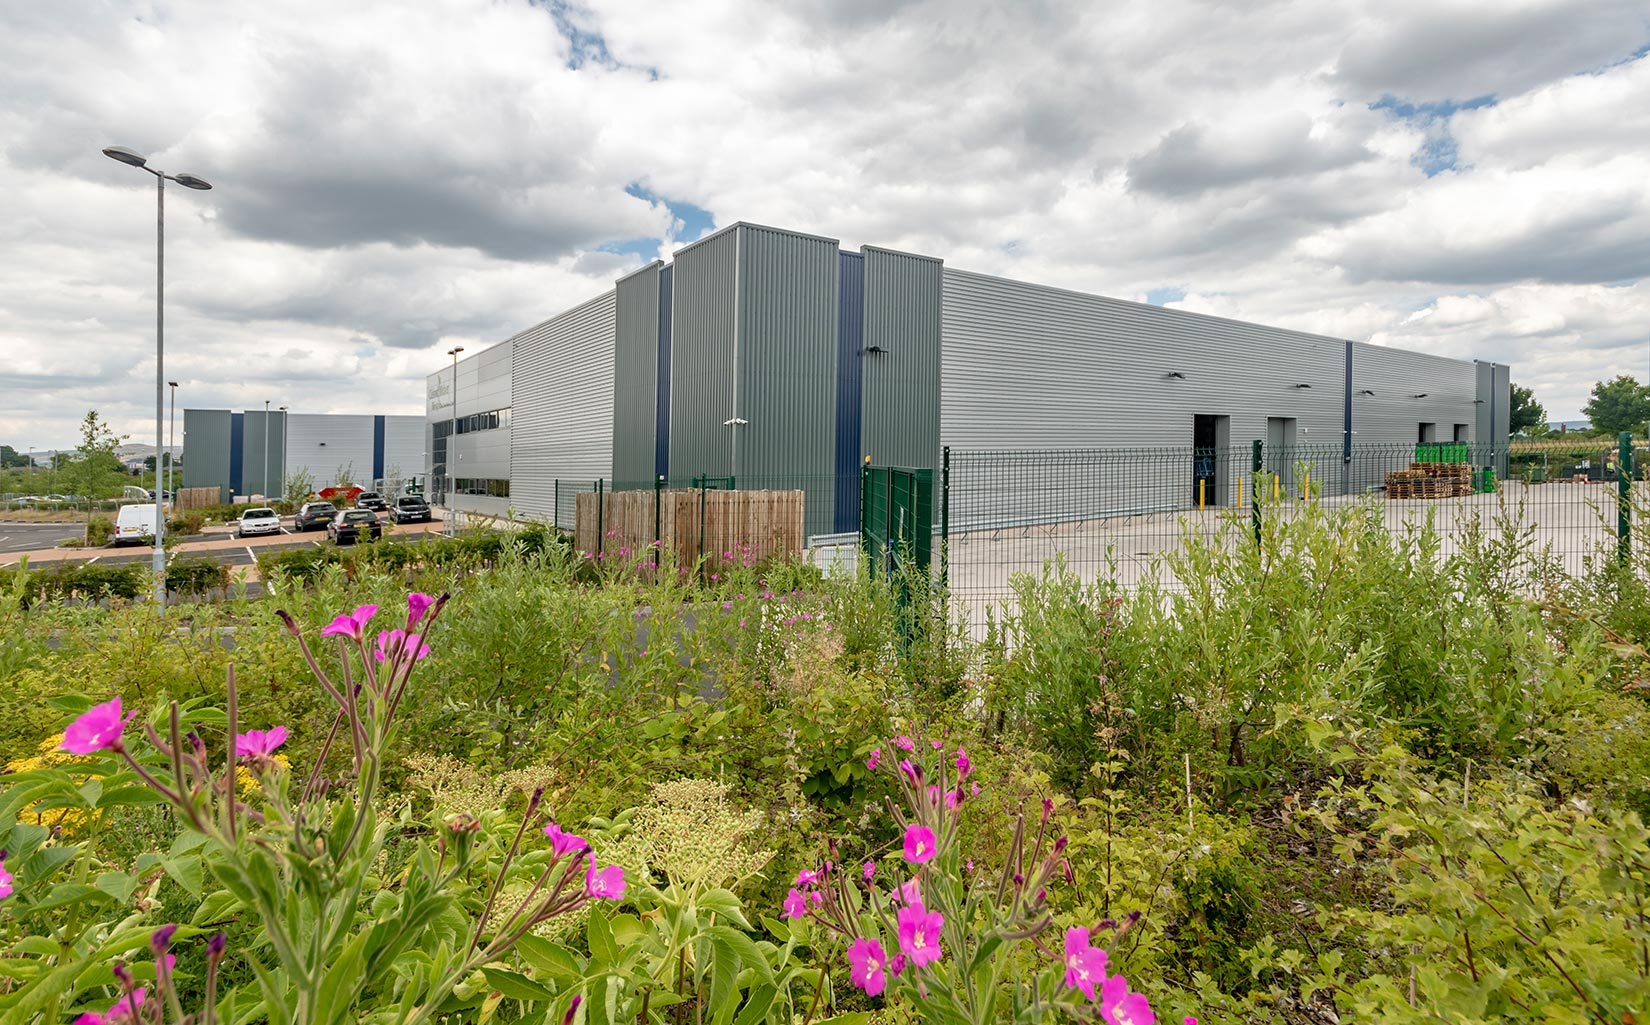 Kingsway Business Park, Milnrow, Rochdale, Cleland Mclver Landscaping